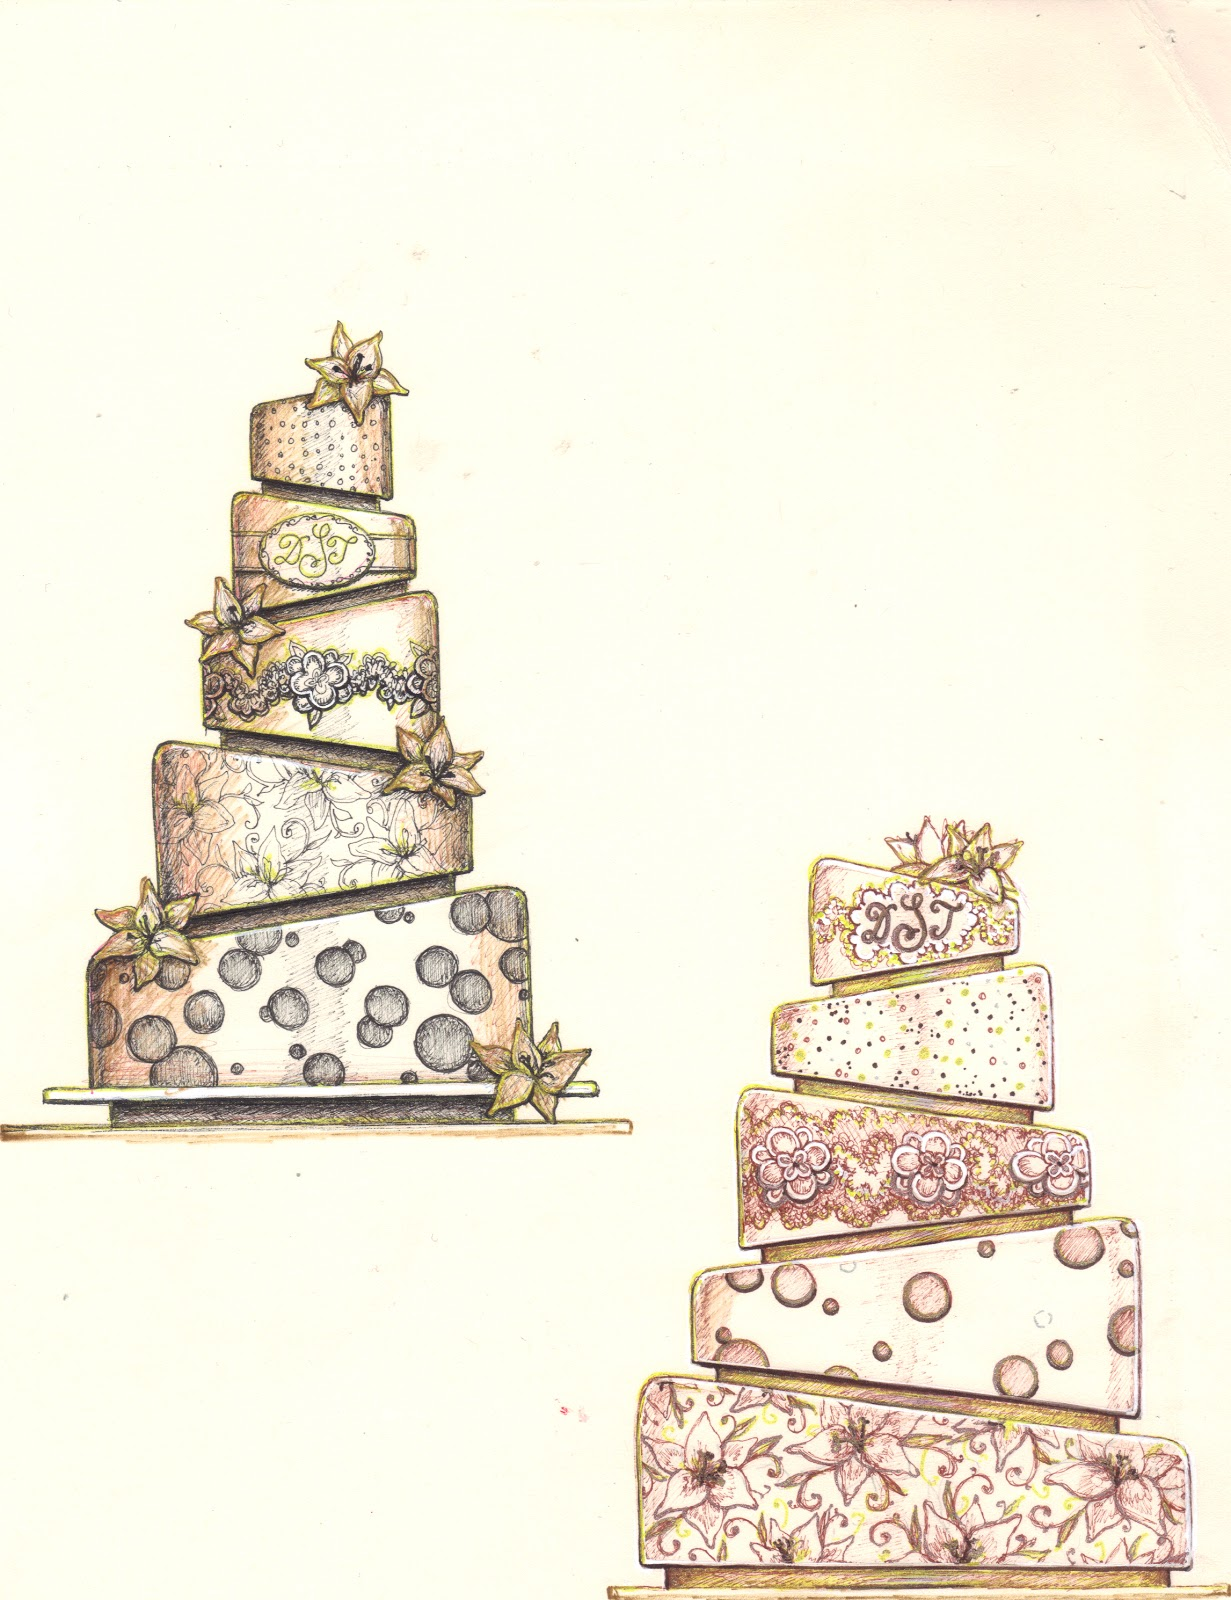 Artist Who Draws Cake : Queen Anne s Lace Cakes: The Cake Artist s Journey